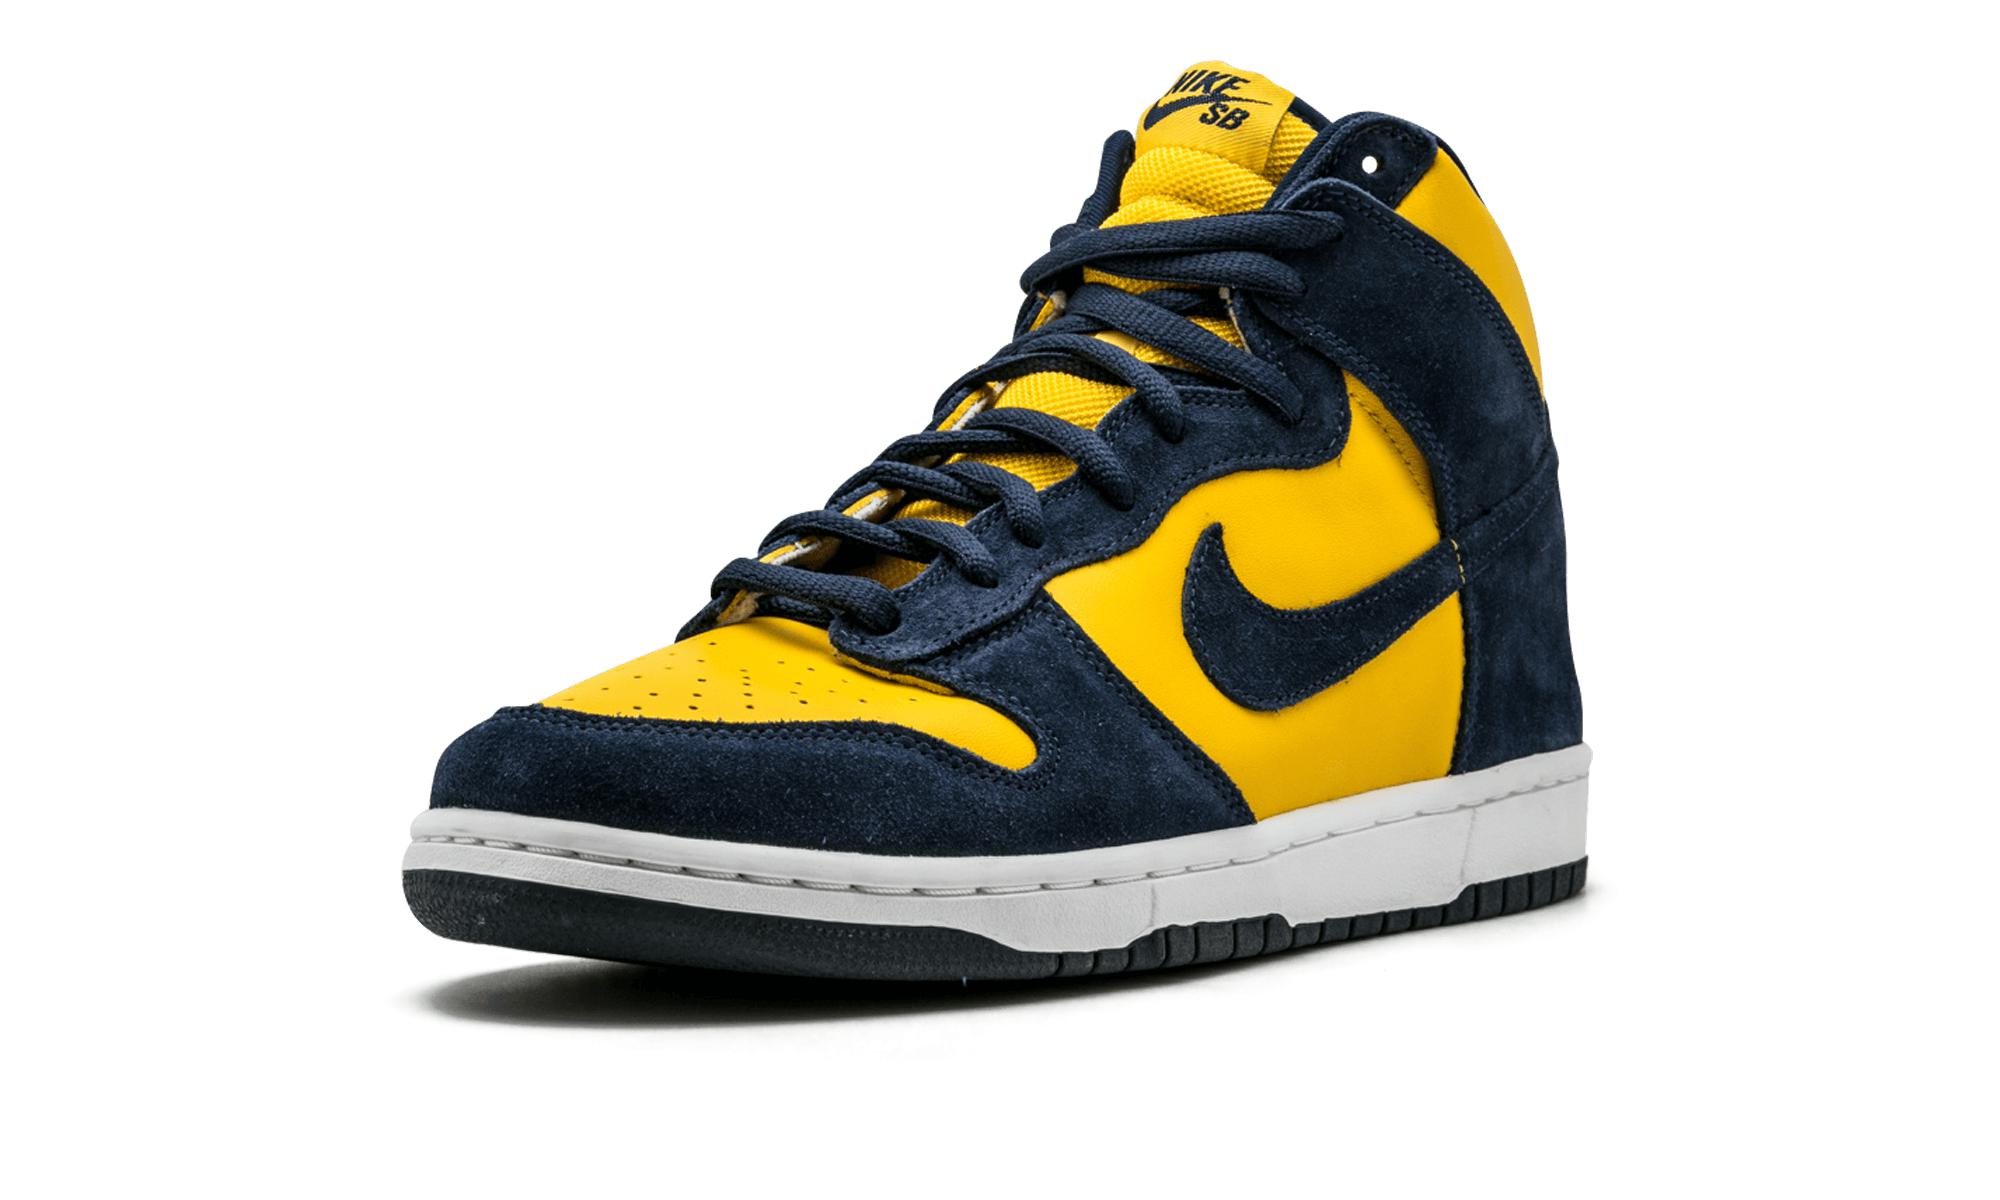 Nike Dunk High Pro Sb in Blue,Yellow (Blue) for Men - Lyst